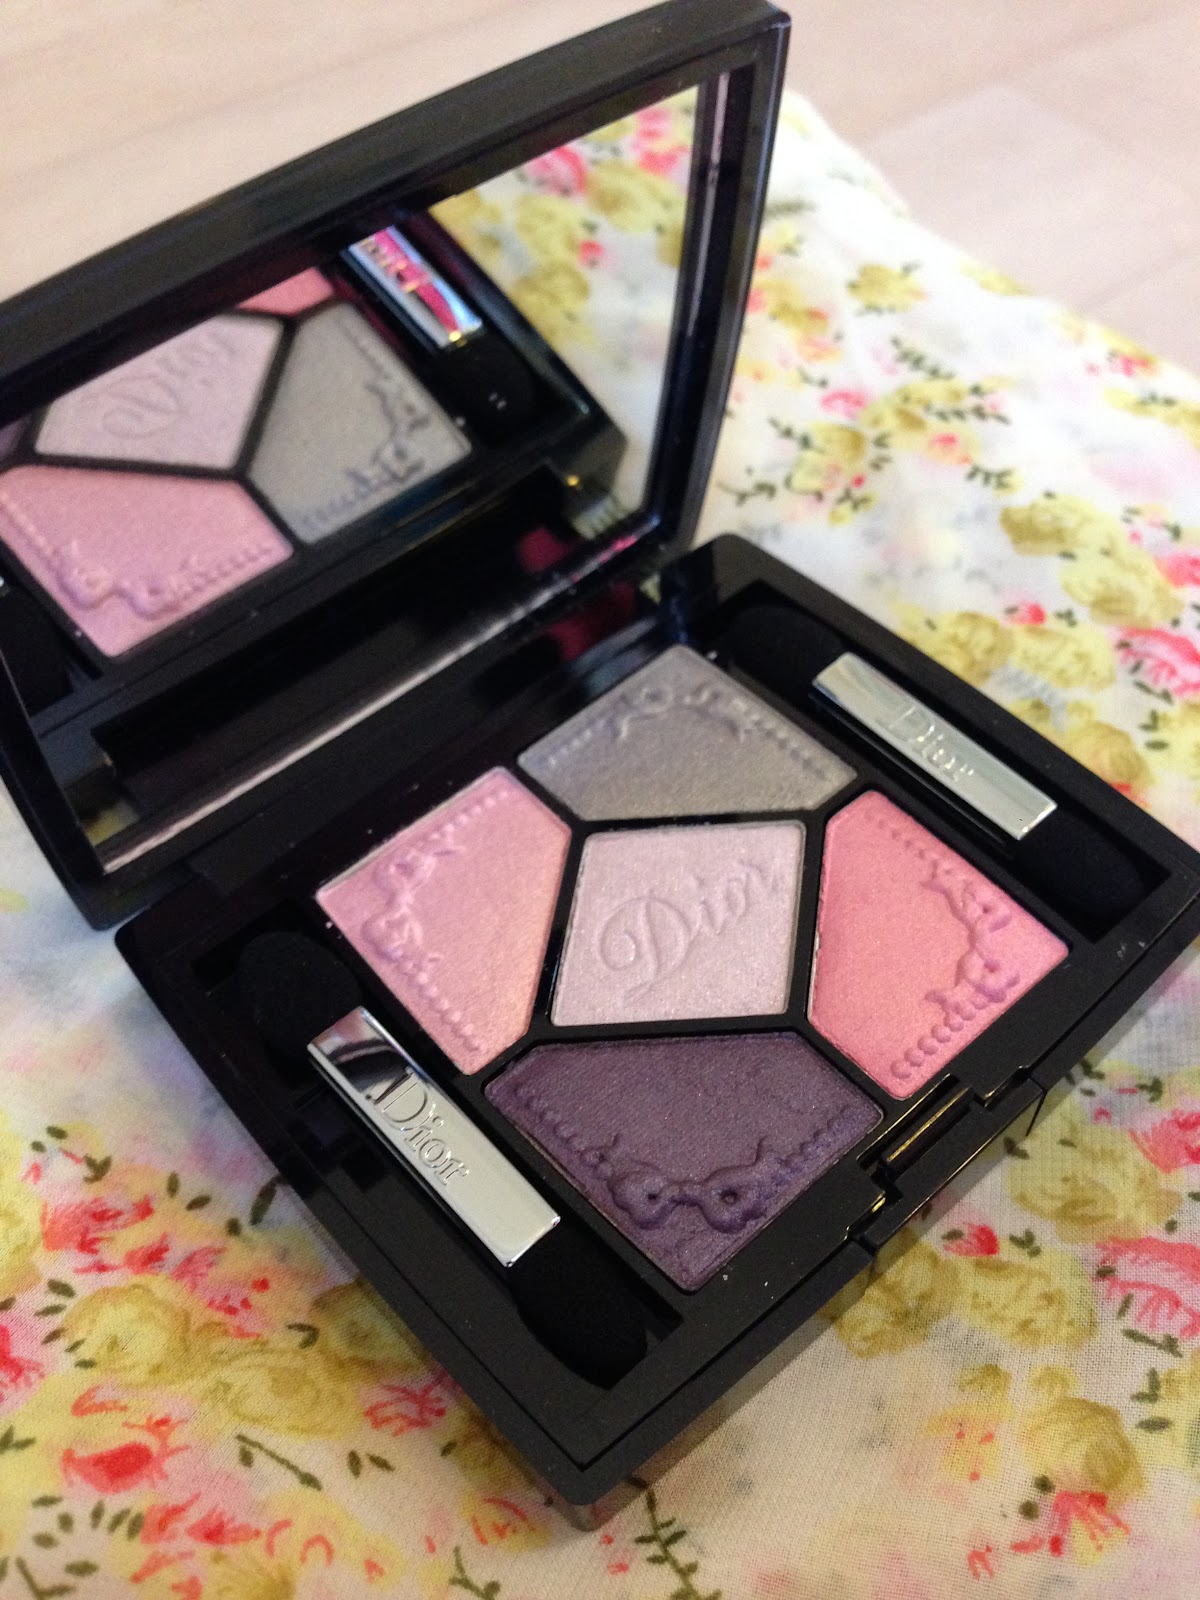 Dior Trianon 5 Couleurs Limited Edition Palette in Pink Pompadour